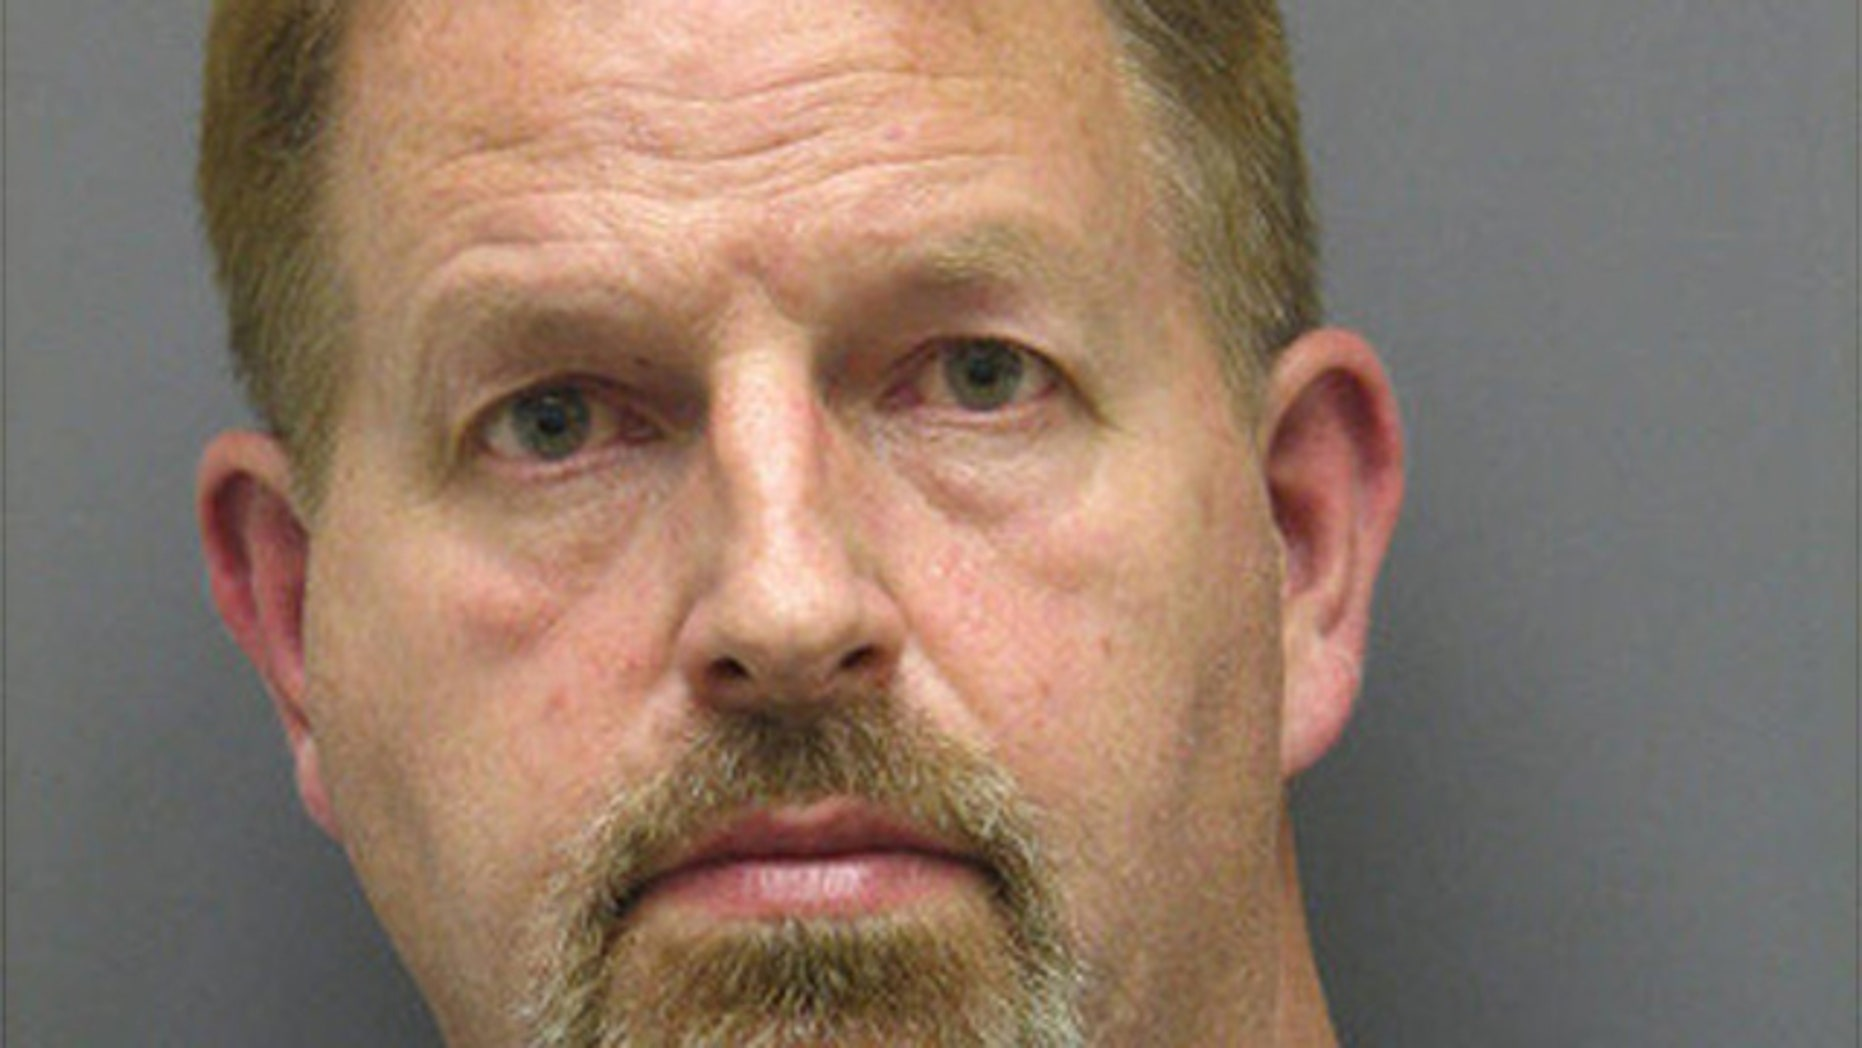 Harold Glenn Rodman, 52, allegedly sexually assaulted a woman early Sunday morning.